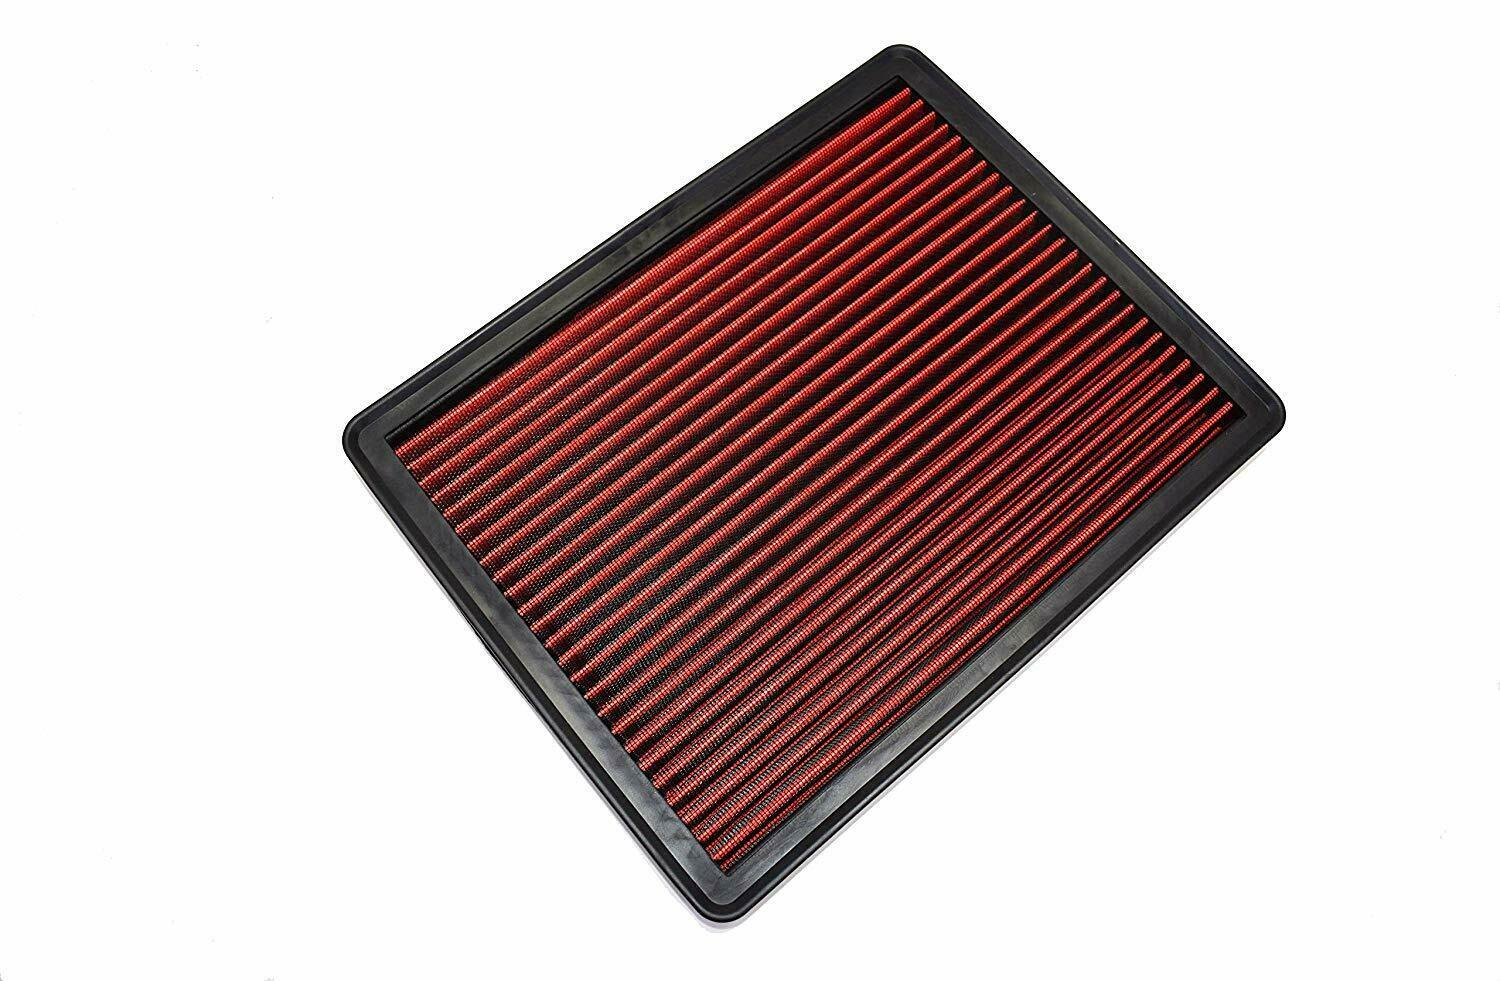 Engine Air Filter, Washable and Reusable 1999-2019 Chevy/GMC Truck and SUV V6/V8